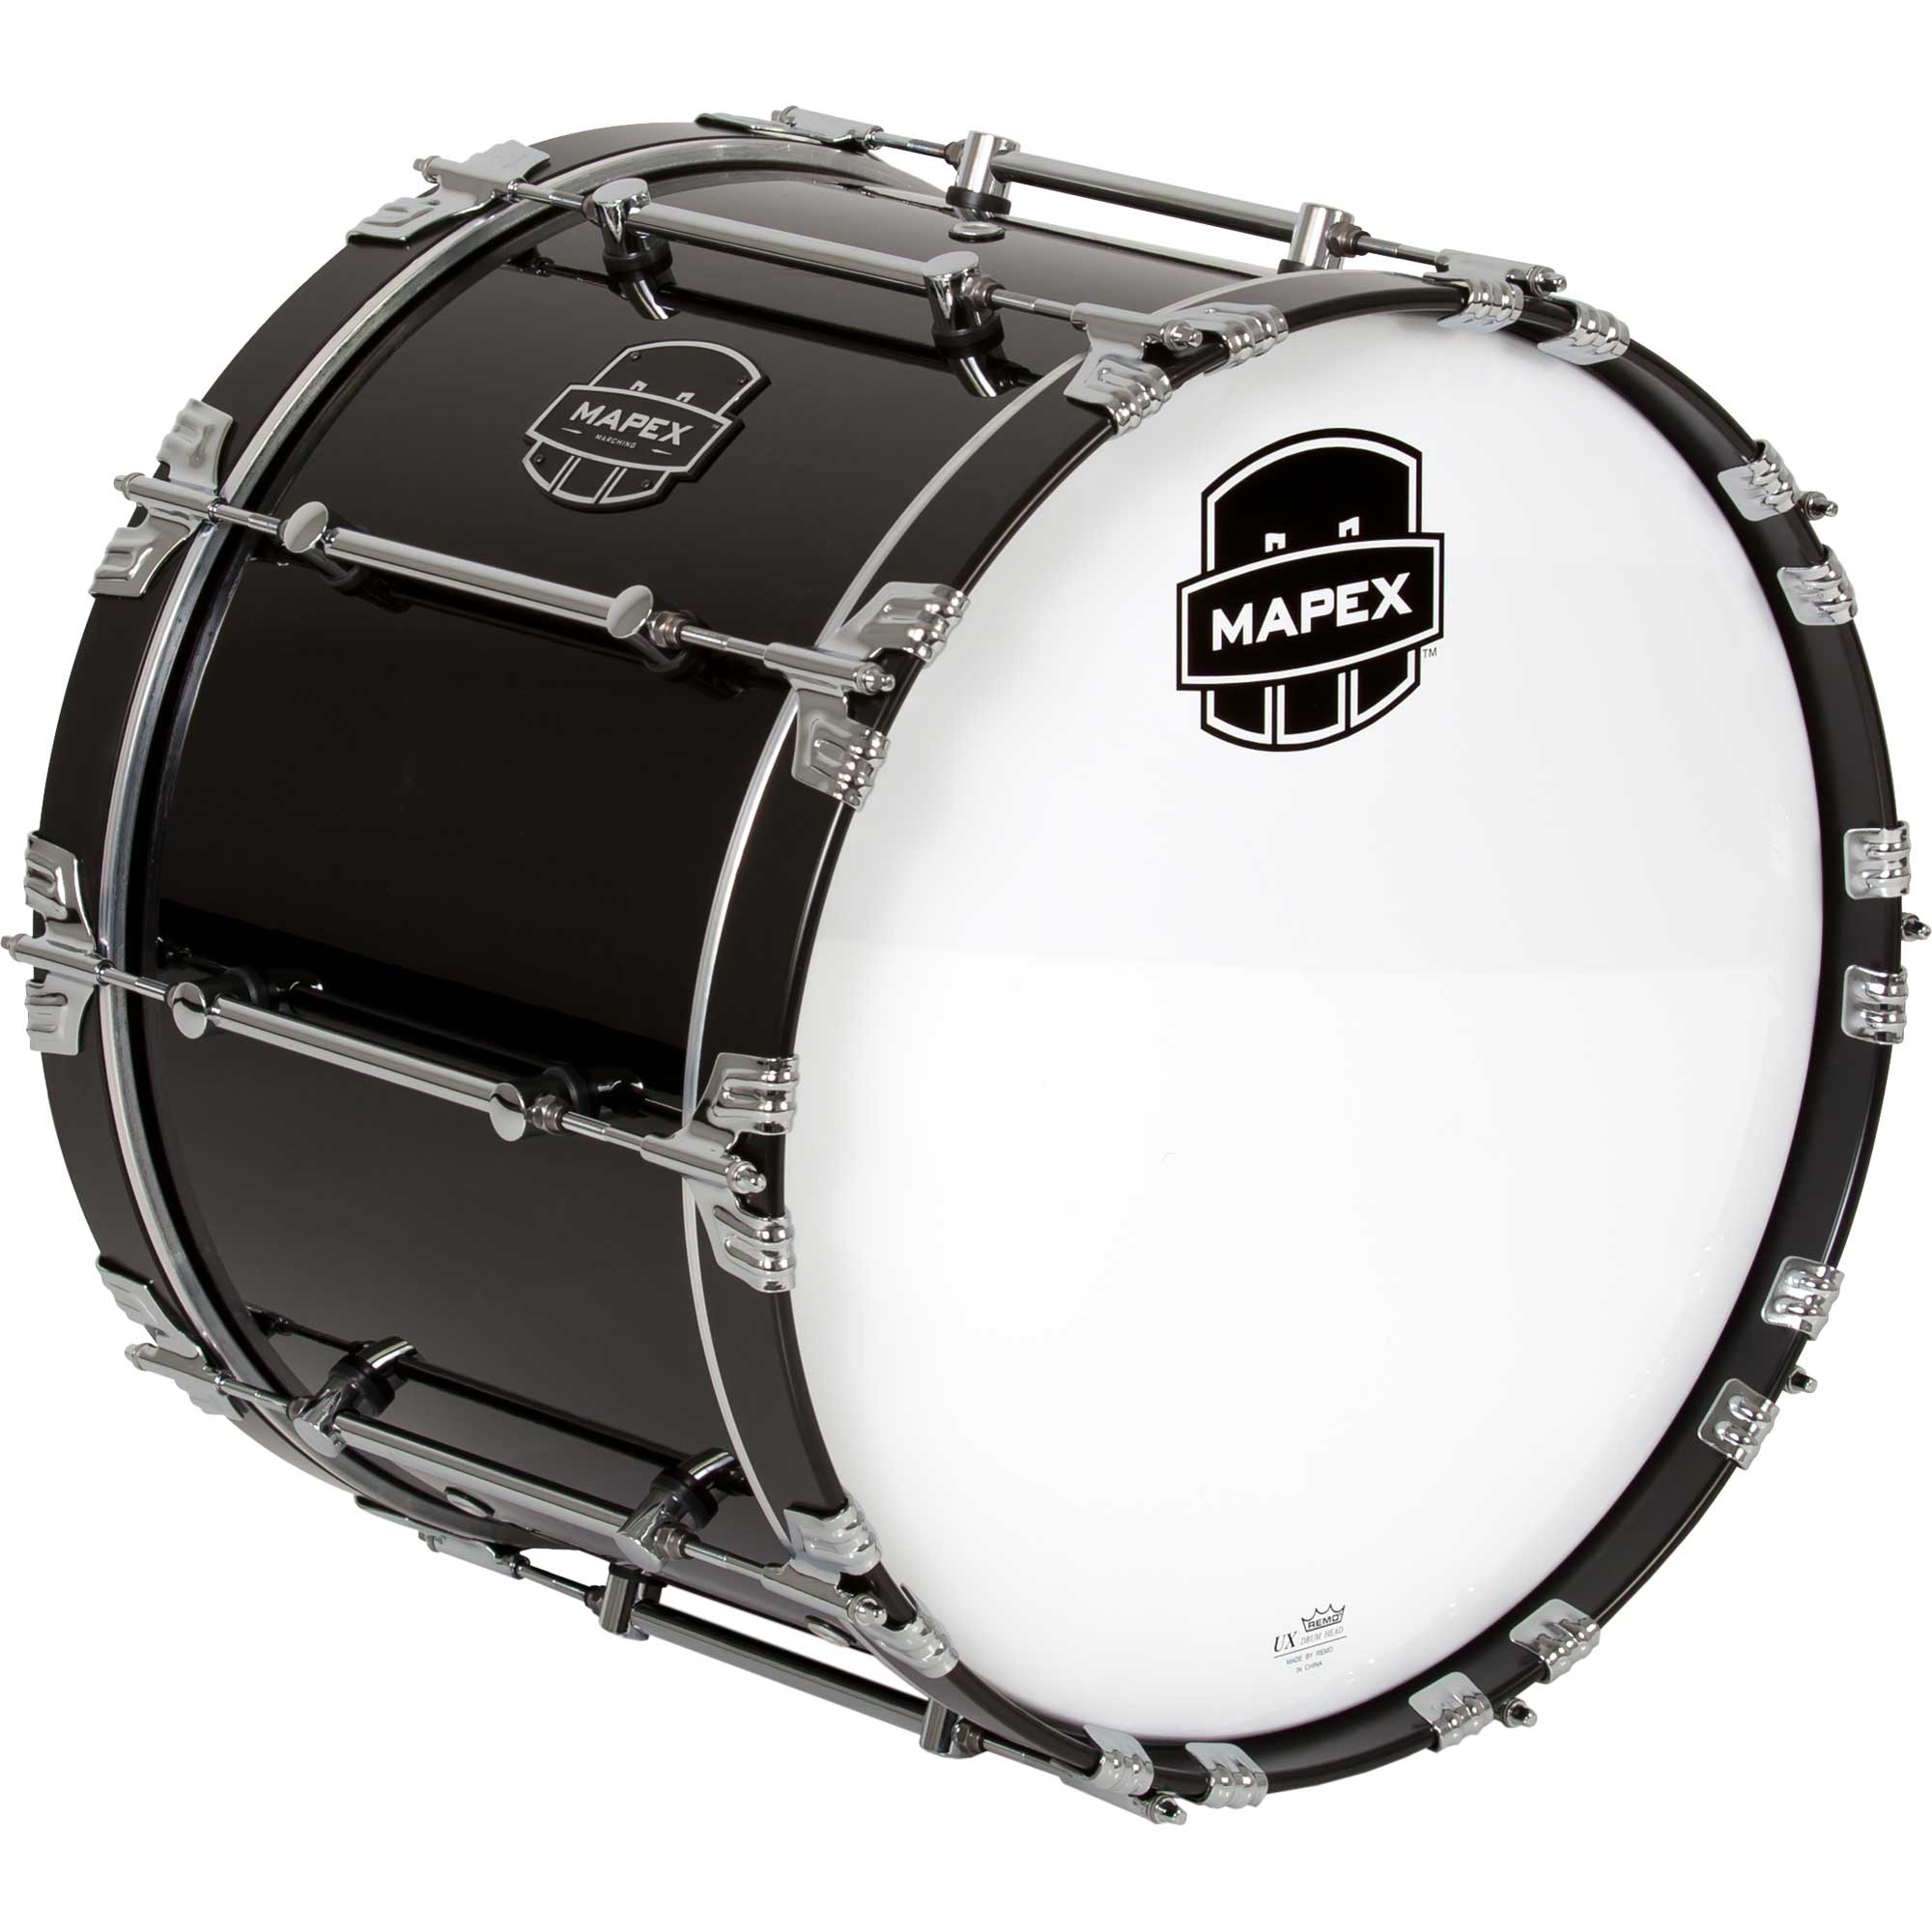 "Mapex 20"" Quantum Marching Bass Drum in Gloss Black"